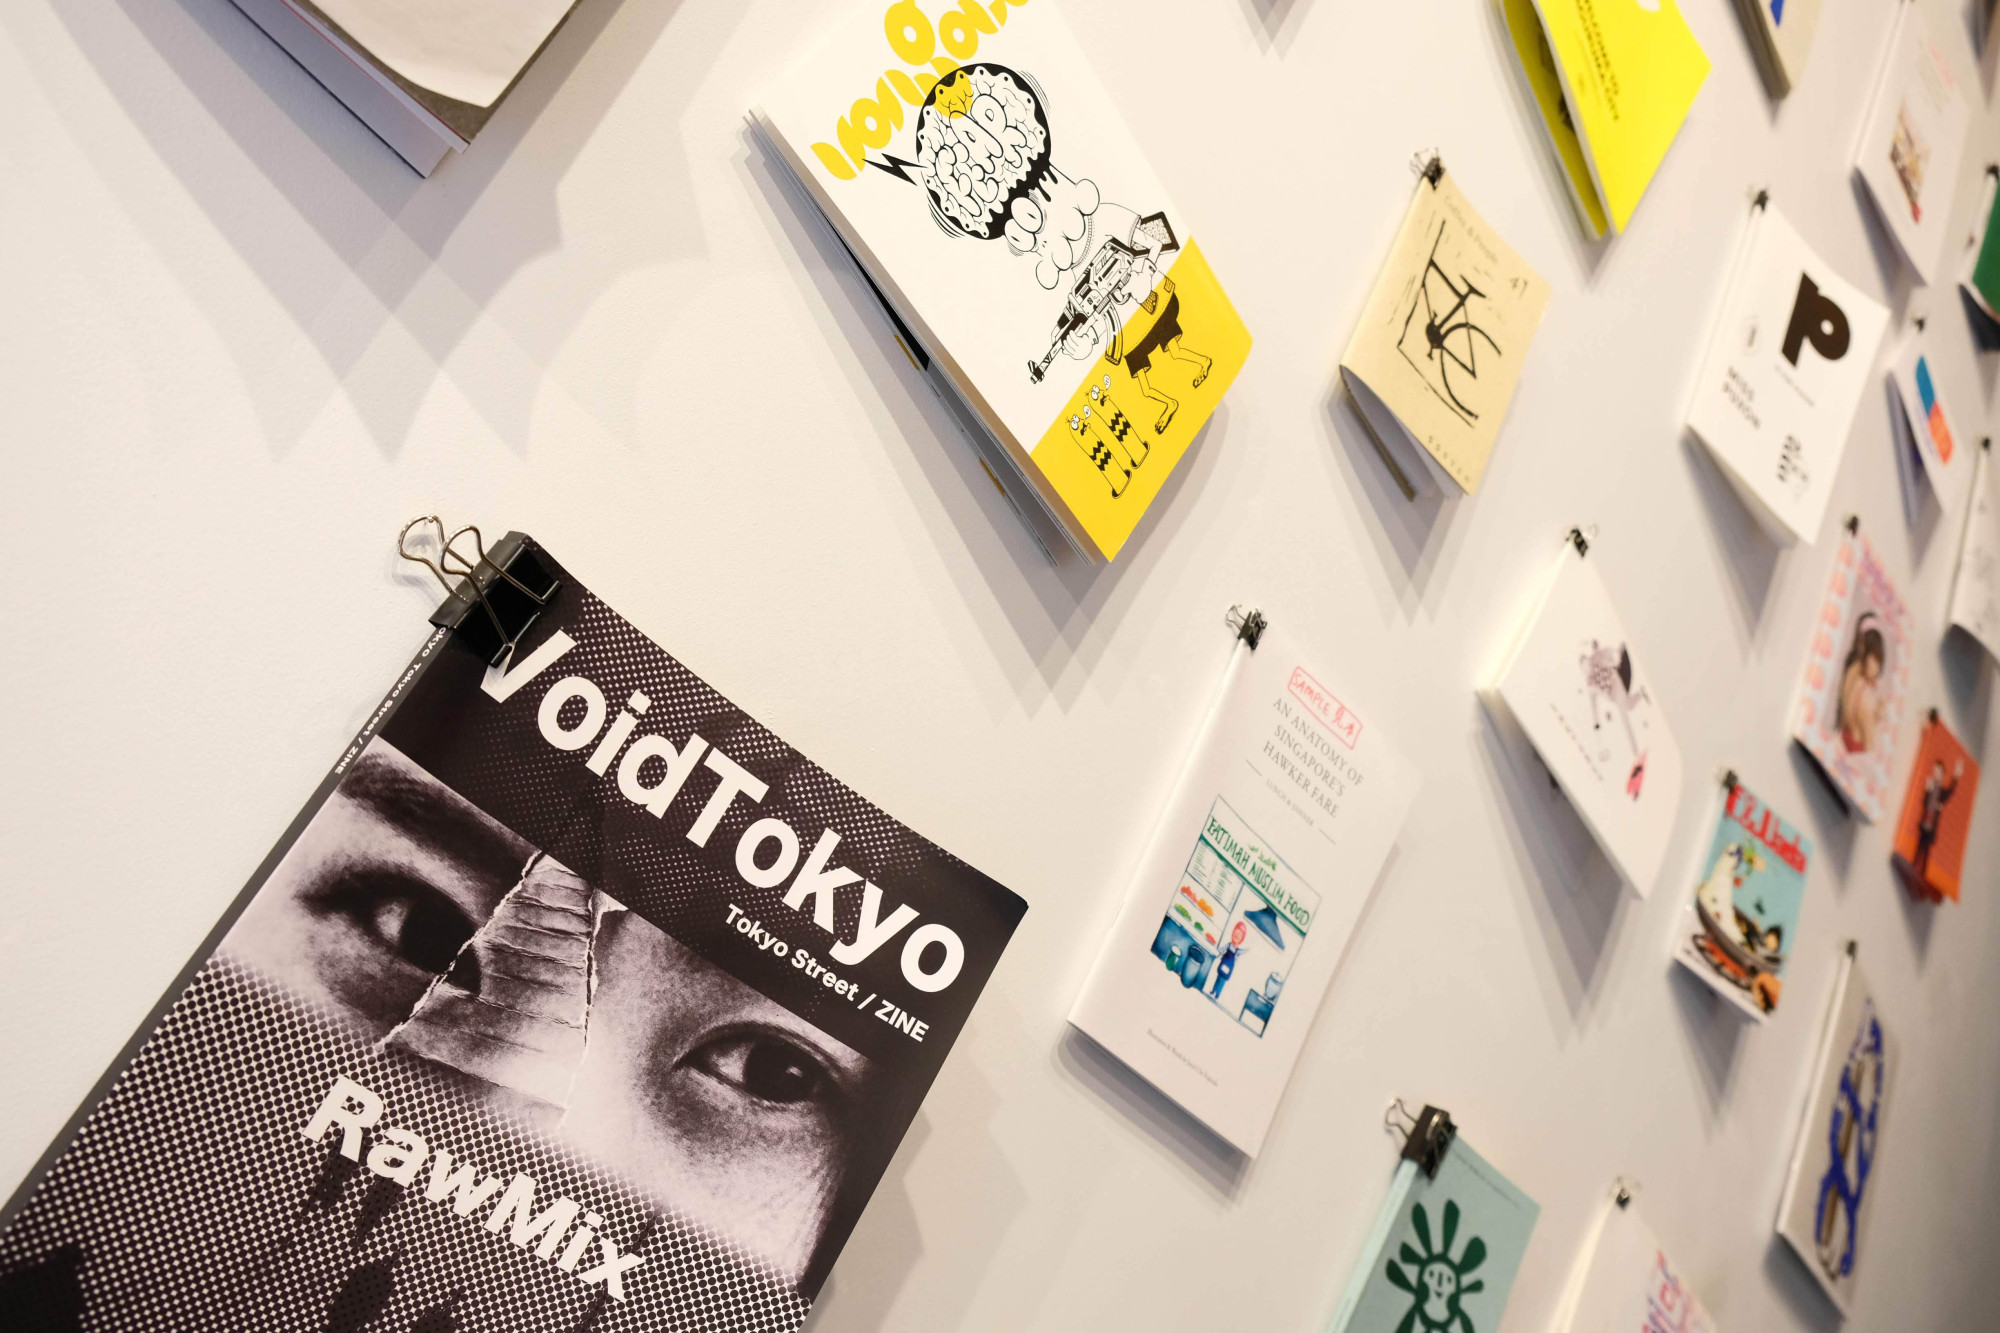 Bold words: Zines on display at  Clouds Art + Coffee's 'Zine House' exhibition. | CLAIRE WILLIAMSON